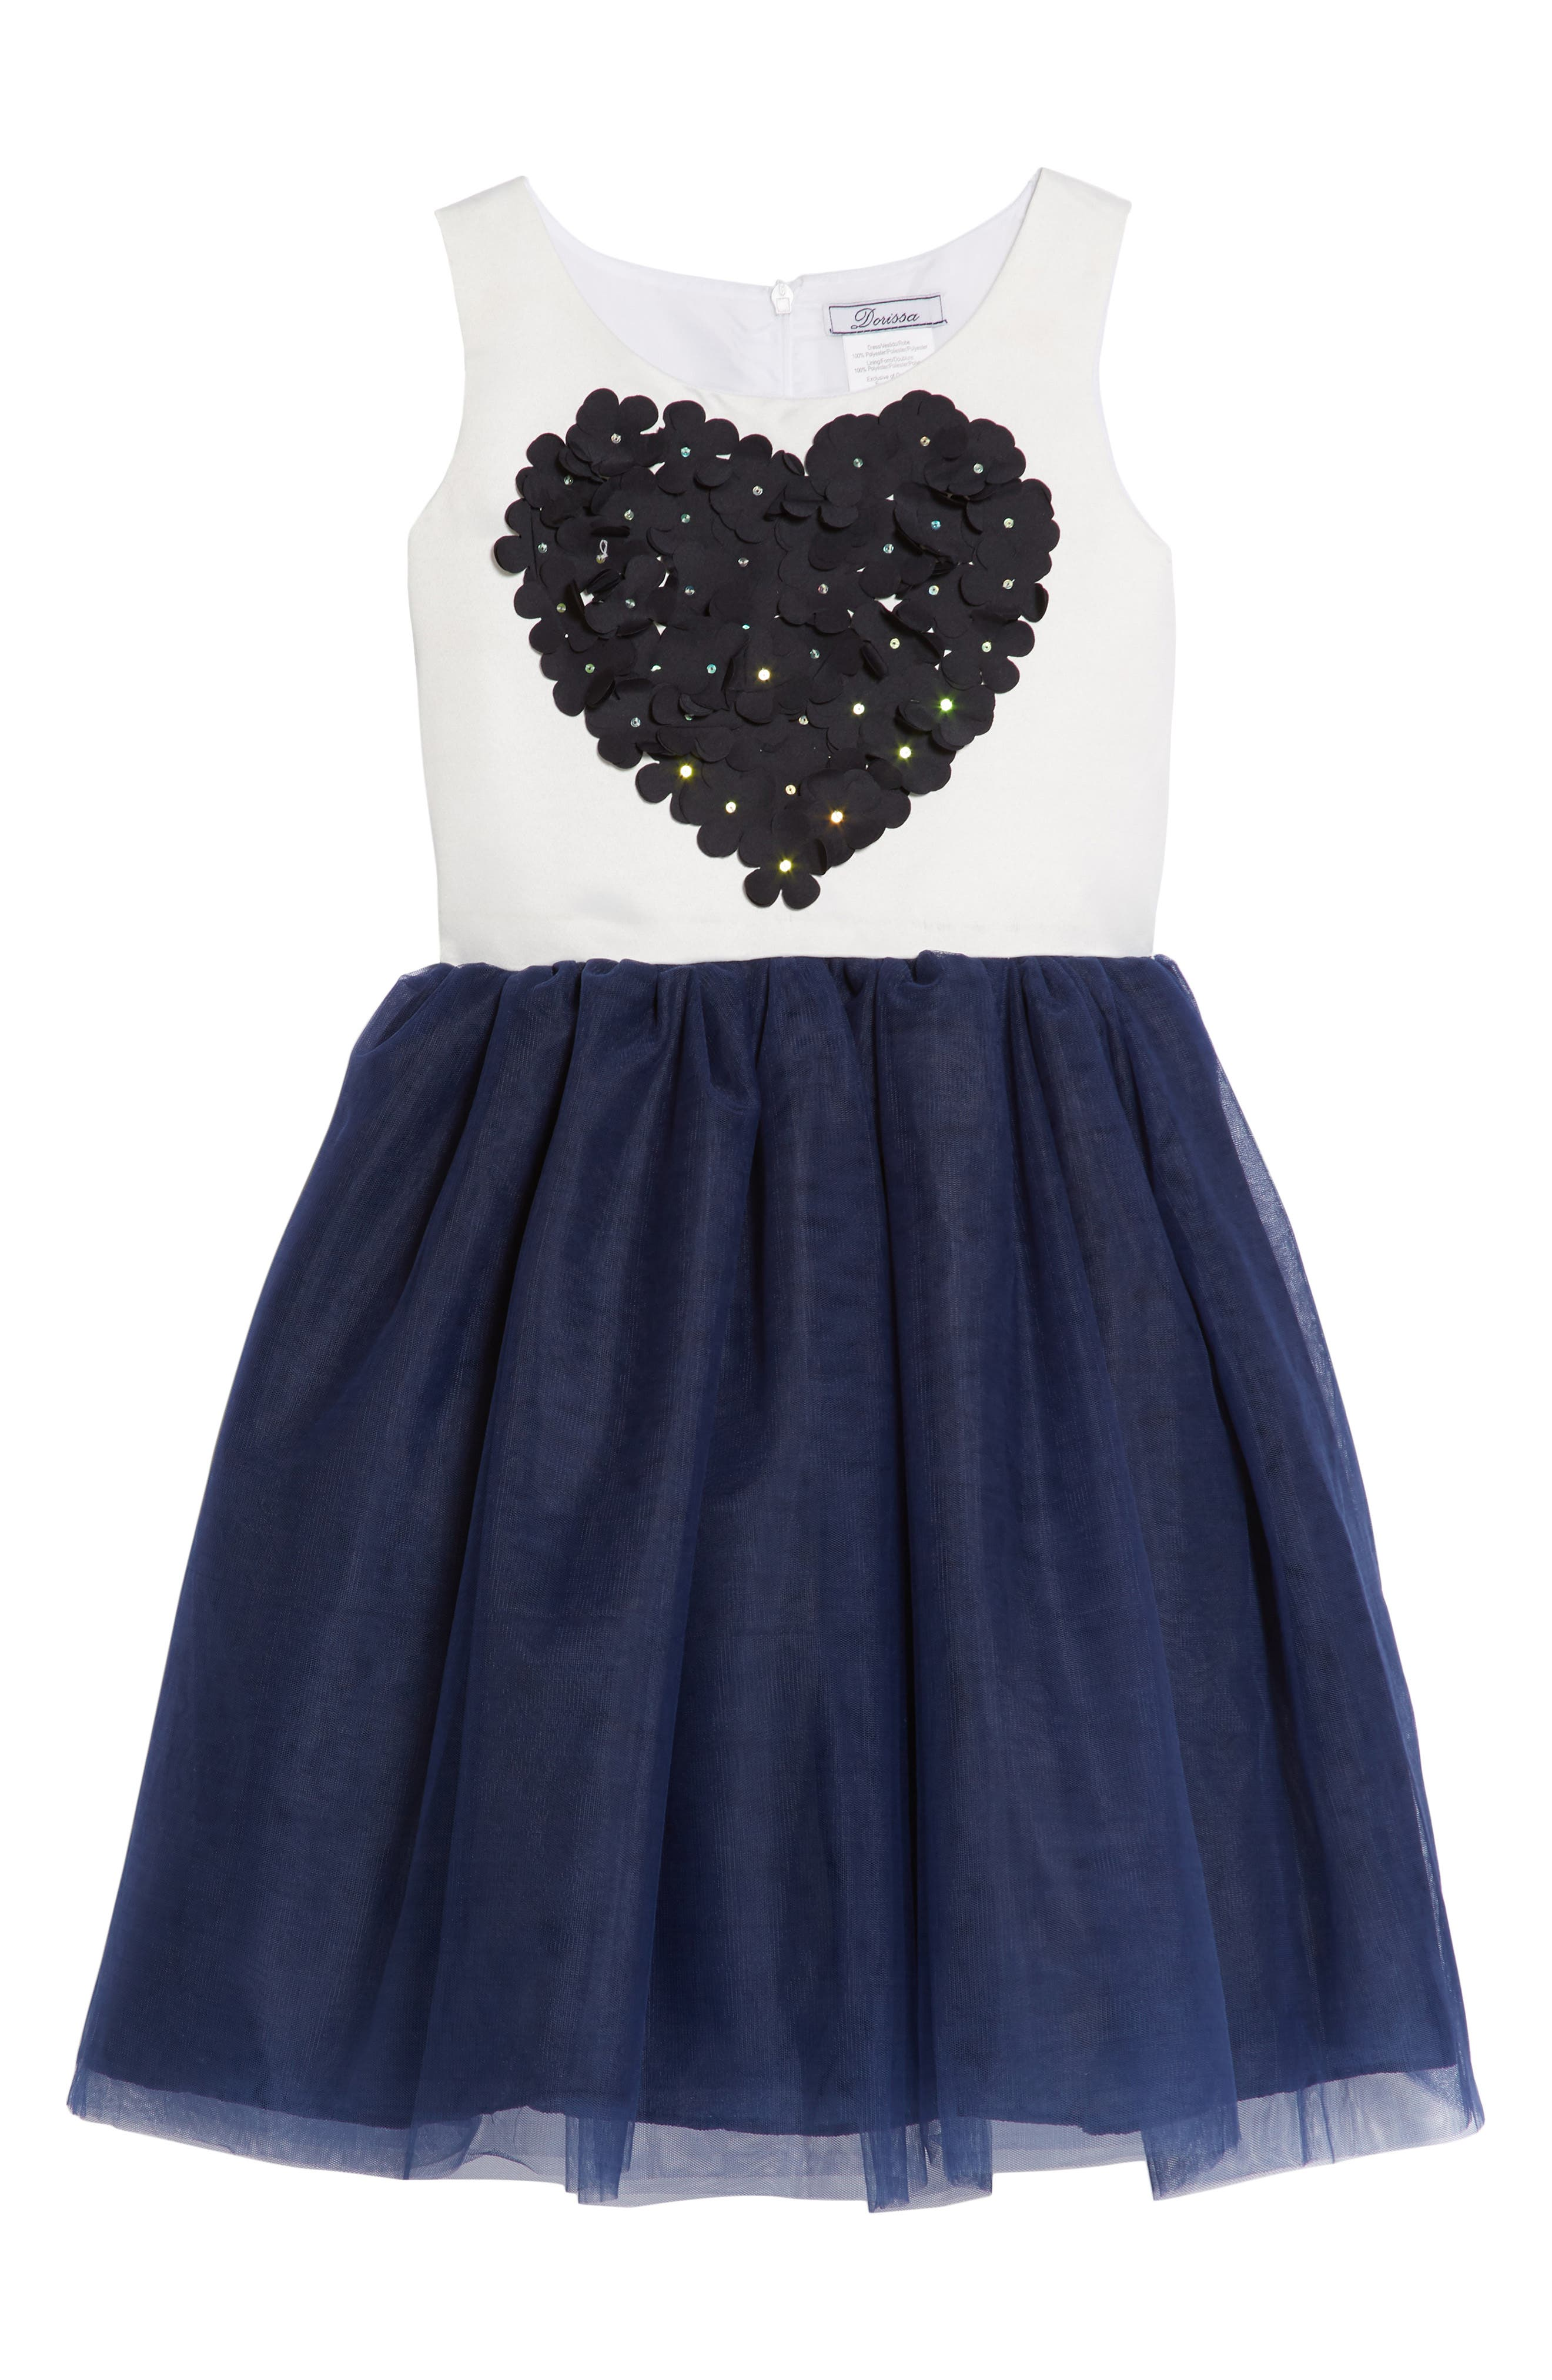 Amy Flower Embellished Tulle Dress,                         Main,                         color, White/ Navy